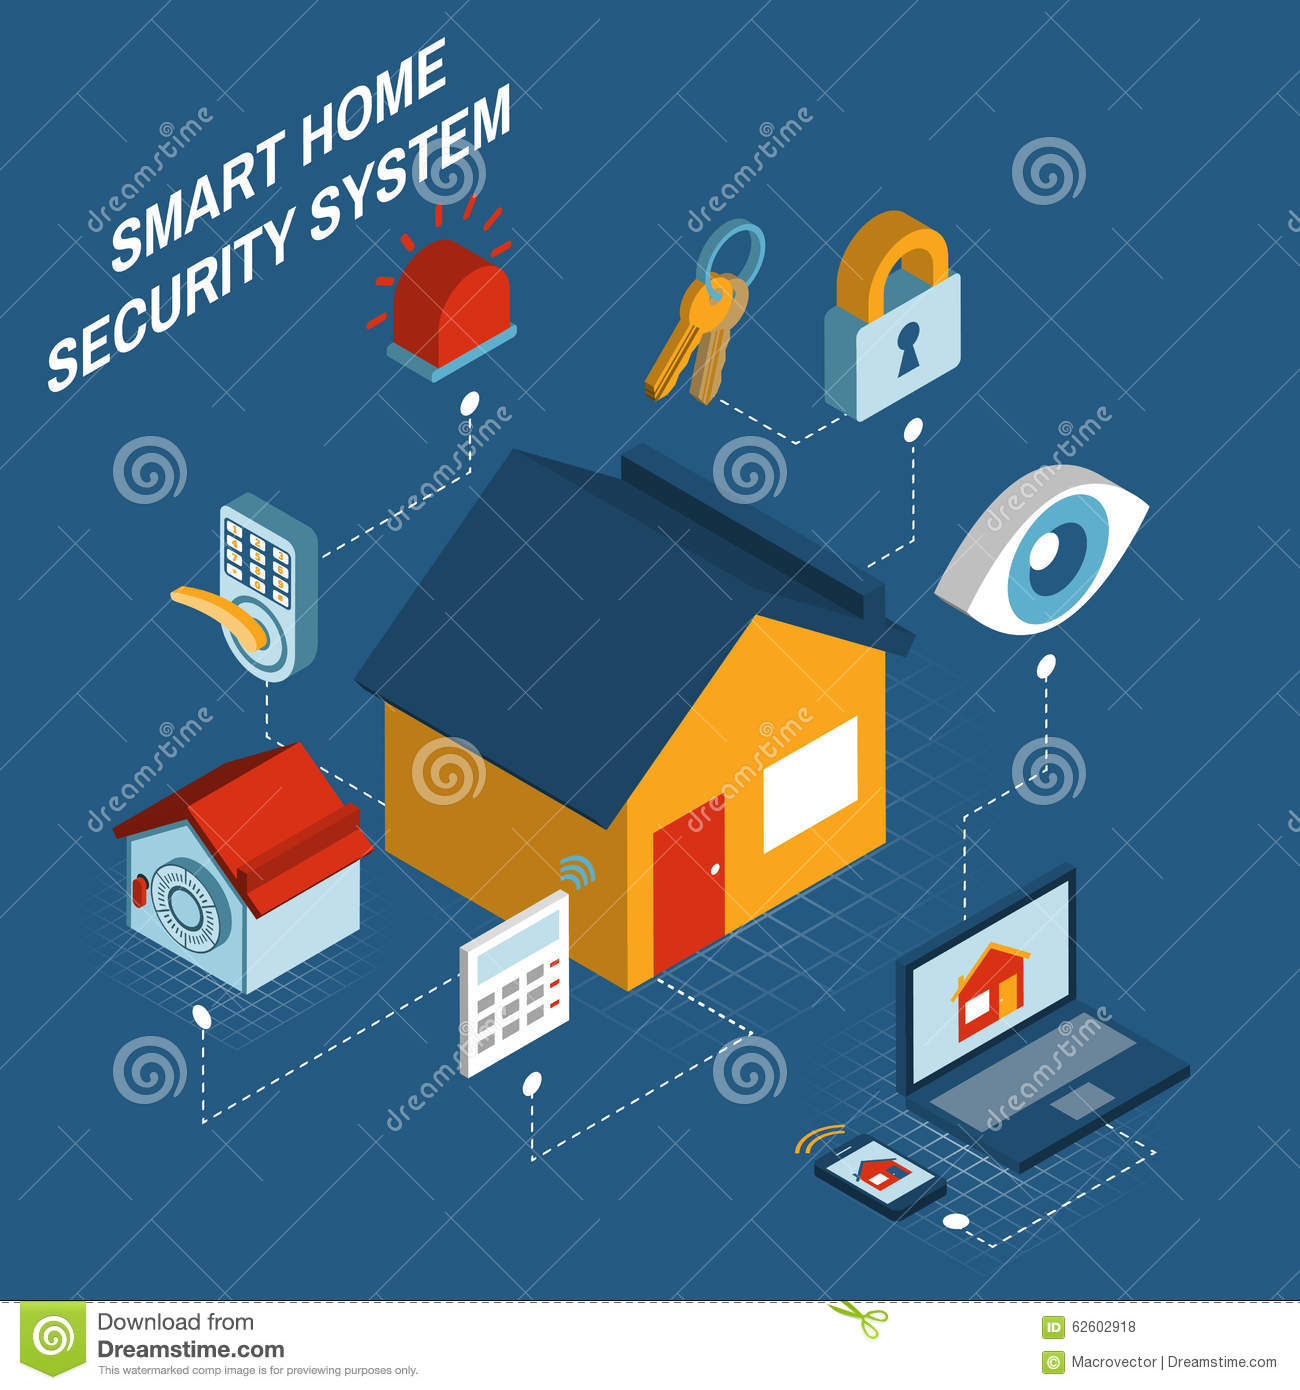 smart home security system isometric poster stock vector image 62602918. Black Bedroom Furniture Sets. Home Design Ideas